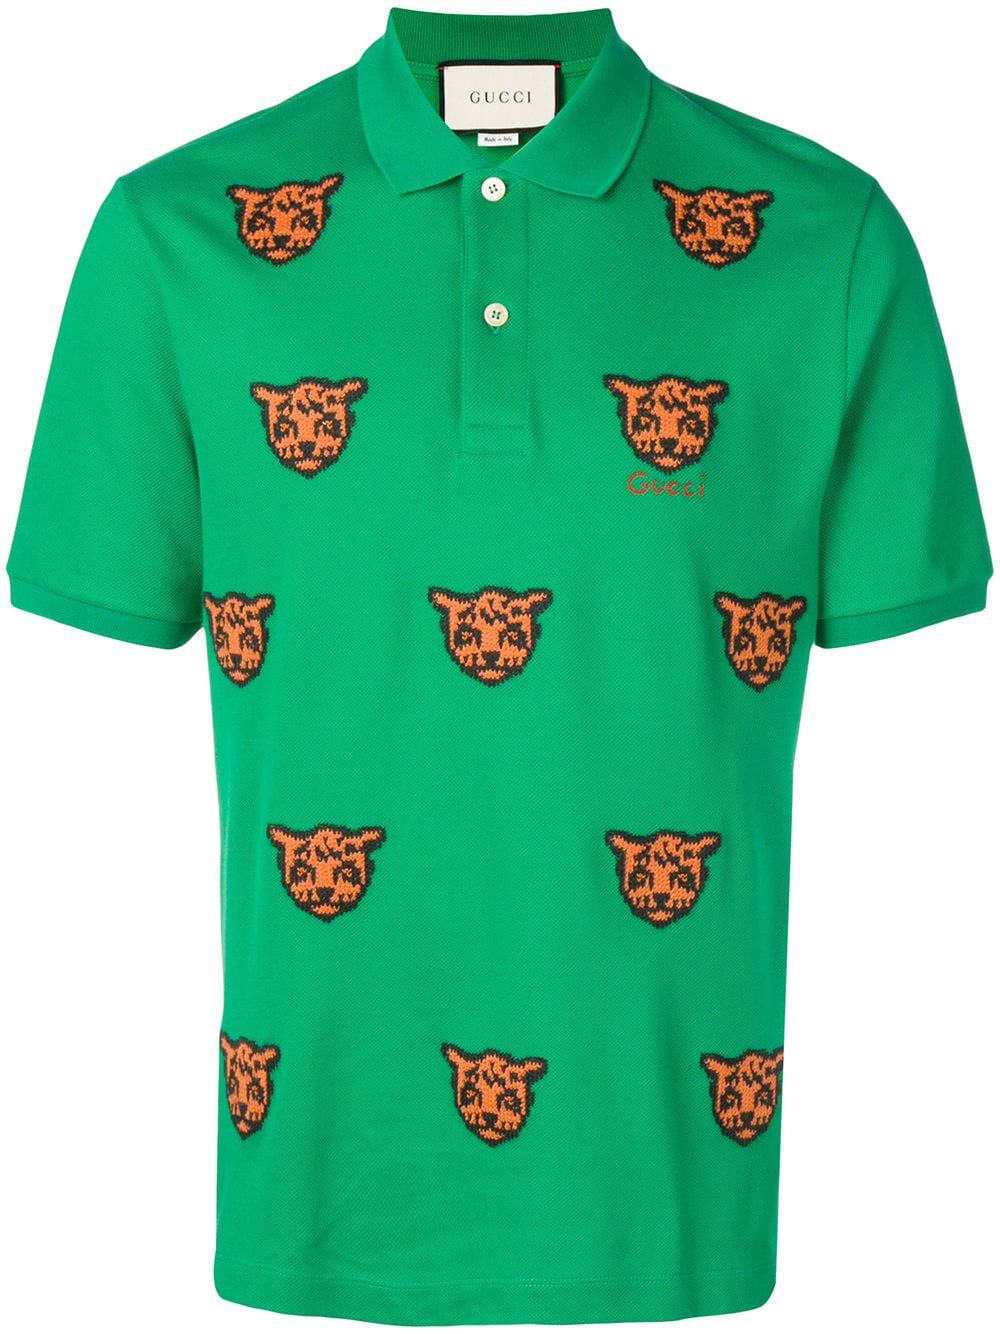 2d633a2995f674 Gucci Embroidered Tiger Polo Shirt - Green In 3134 Green   ModeSens